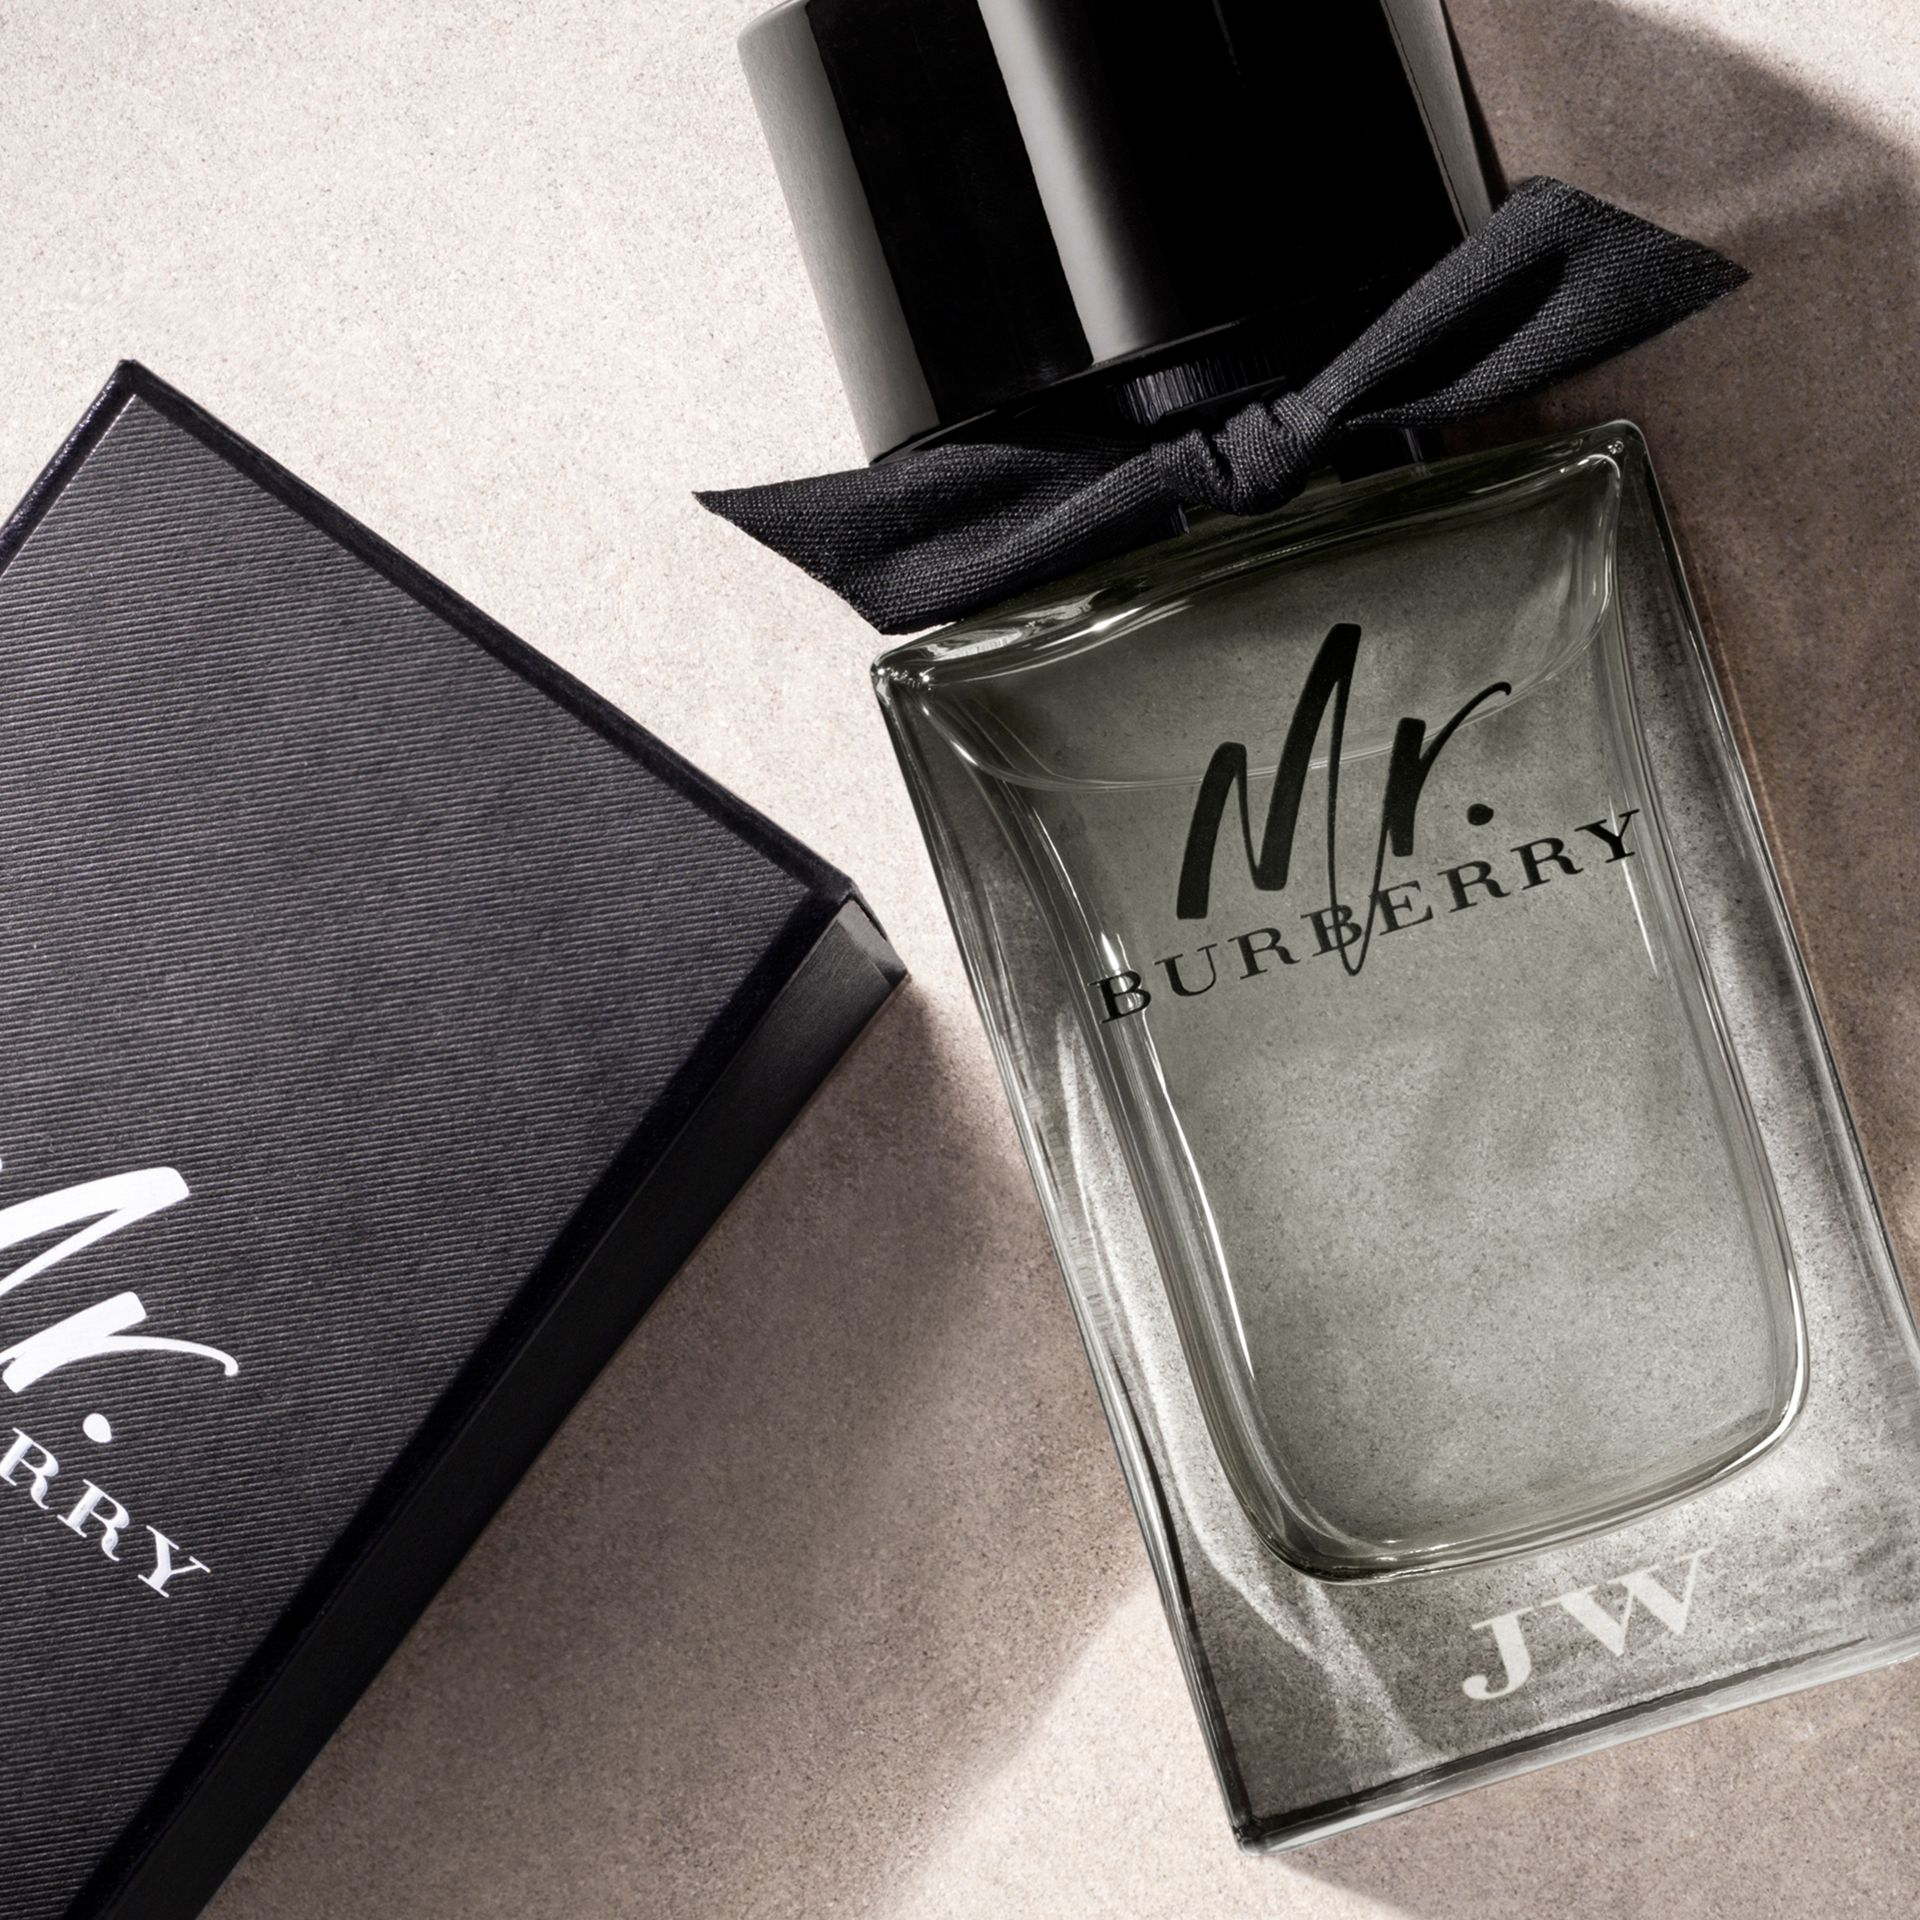 Mr. Burberry Eau de Toilette 100ml - gallery image 4